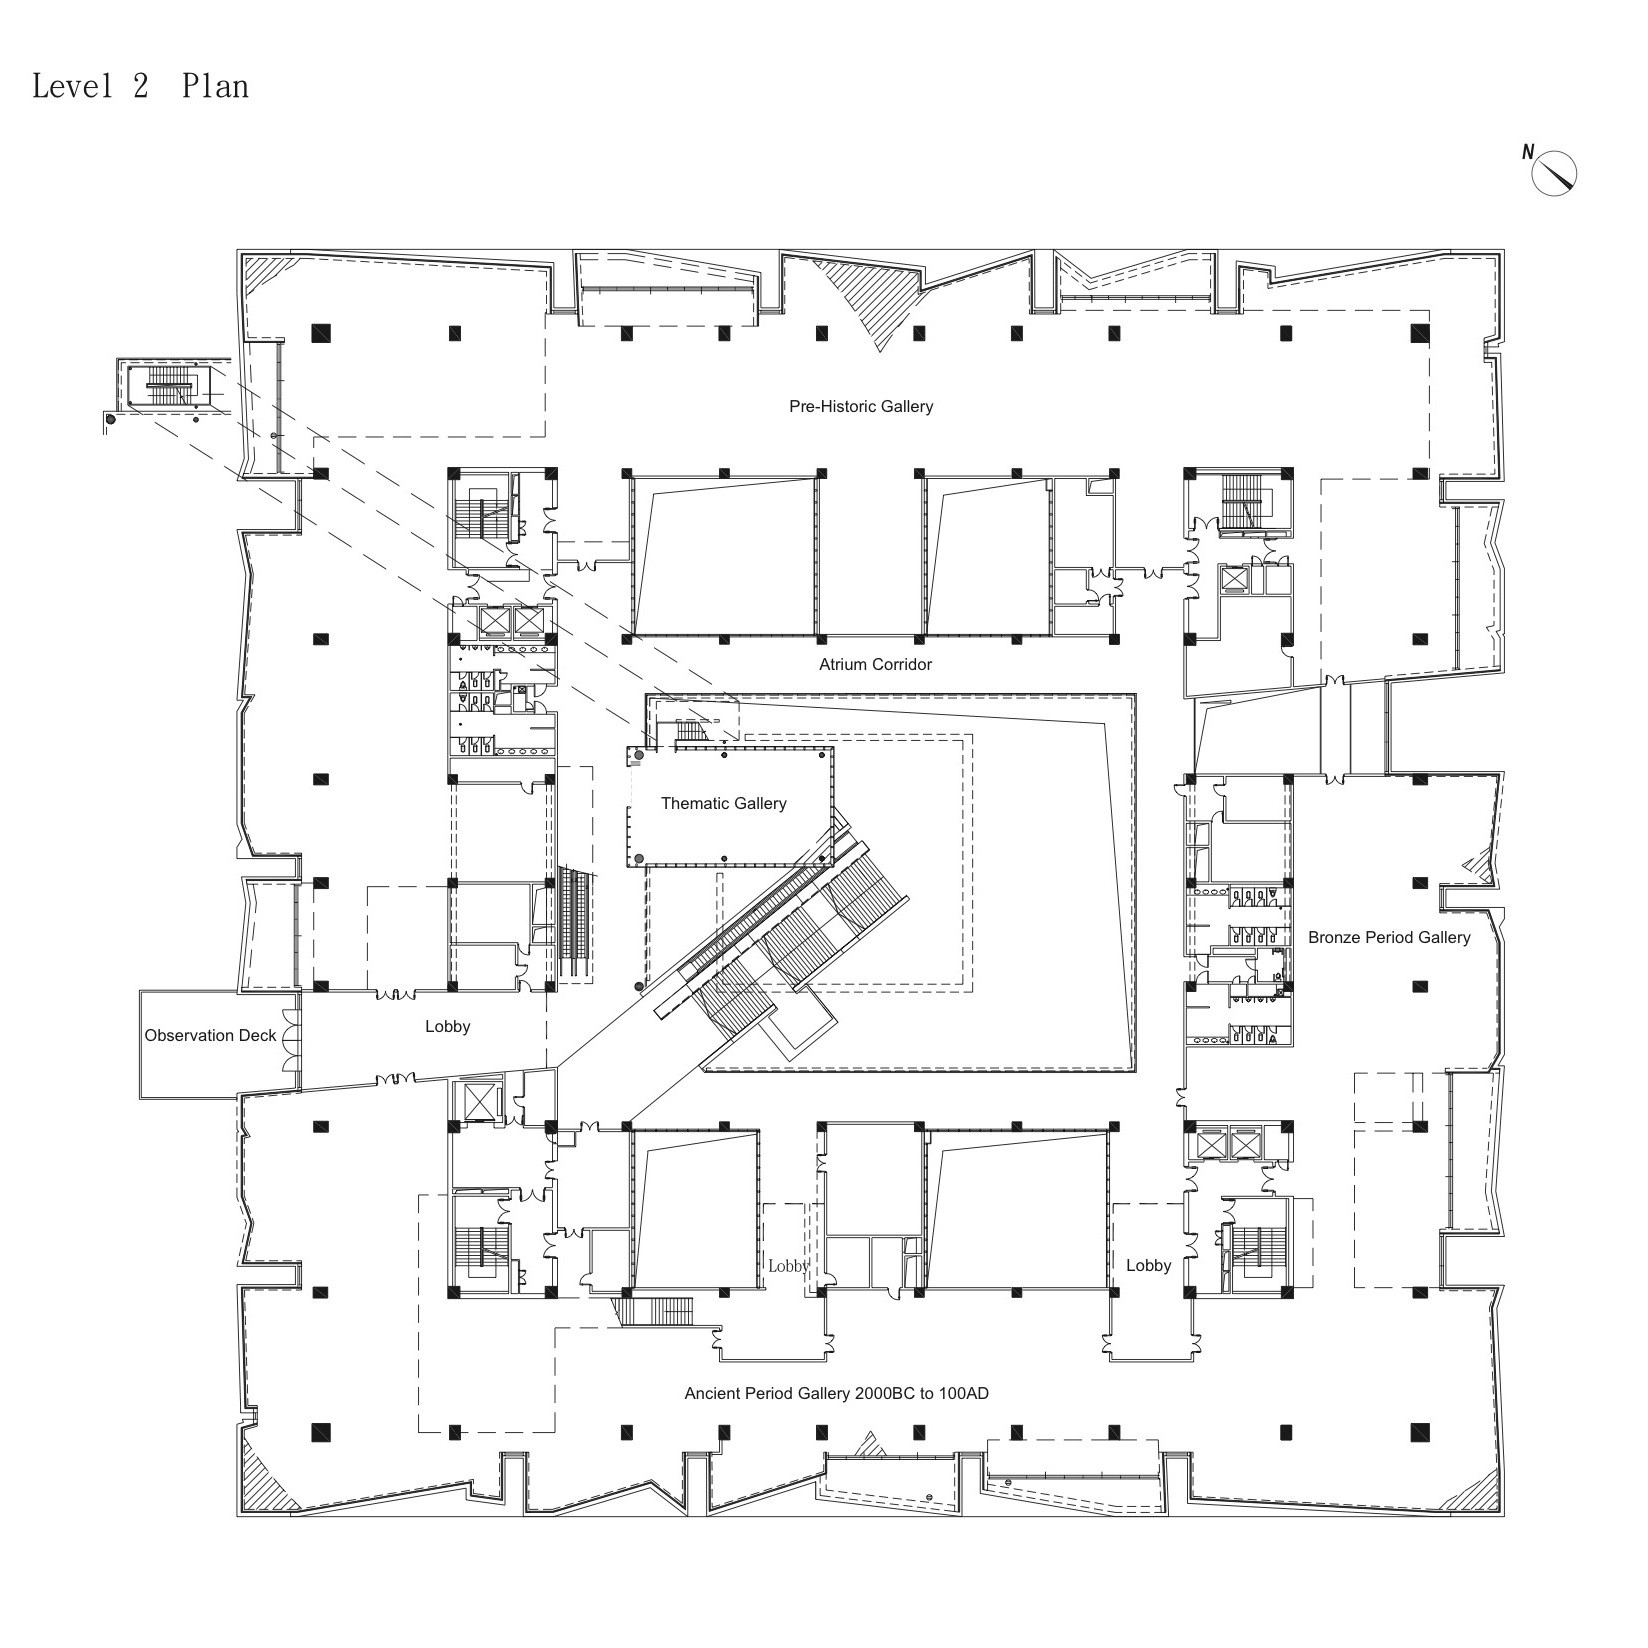 D Exhibition Layout : Gallery of yunnan museum rocco design architects